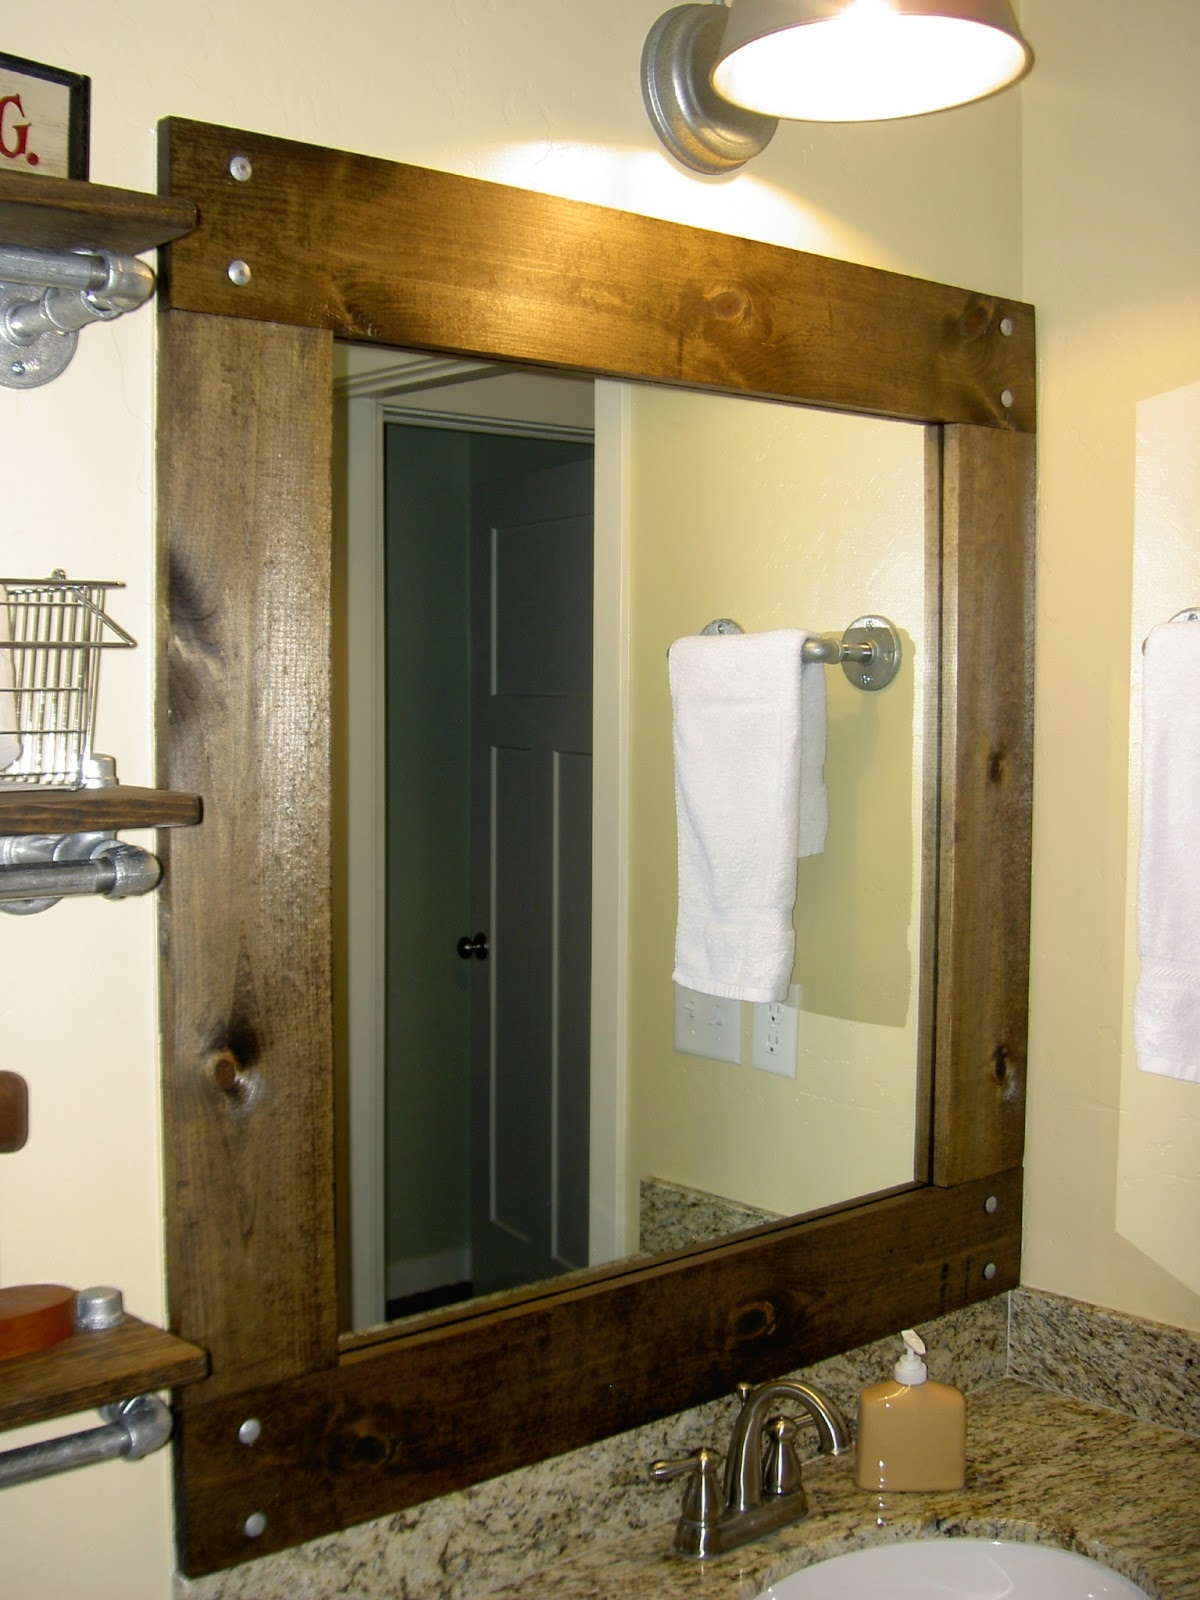 Framed Bathroom Mirrors Rusticframed mirrors in bathrooms my web value